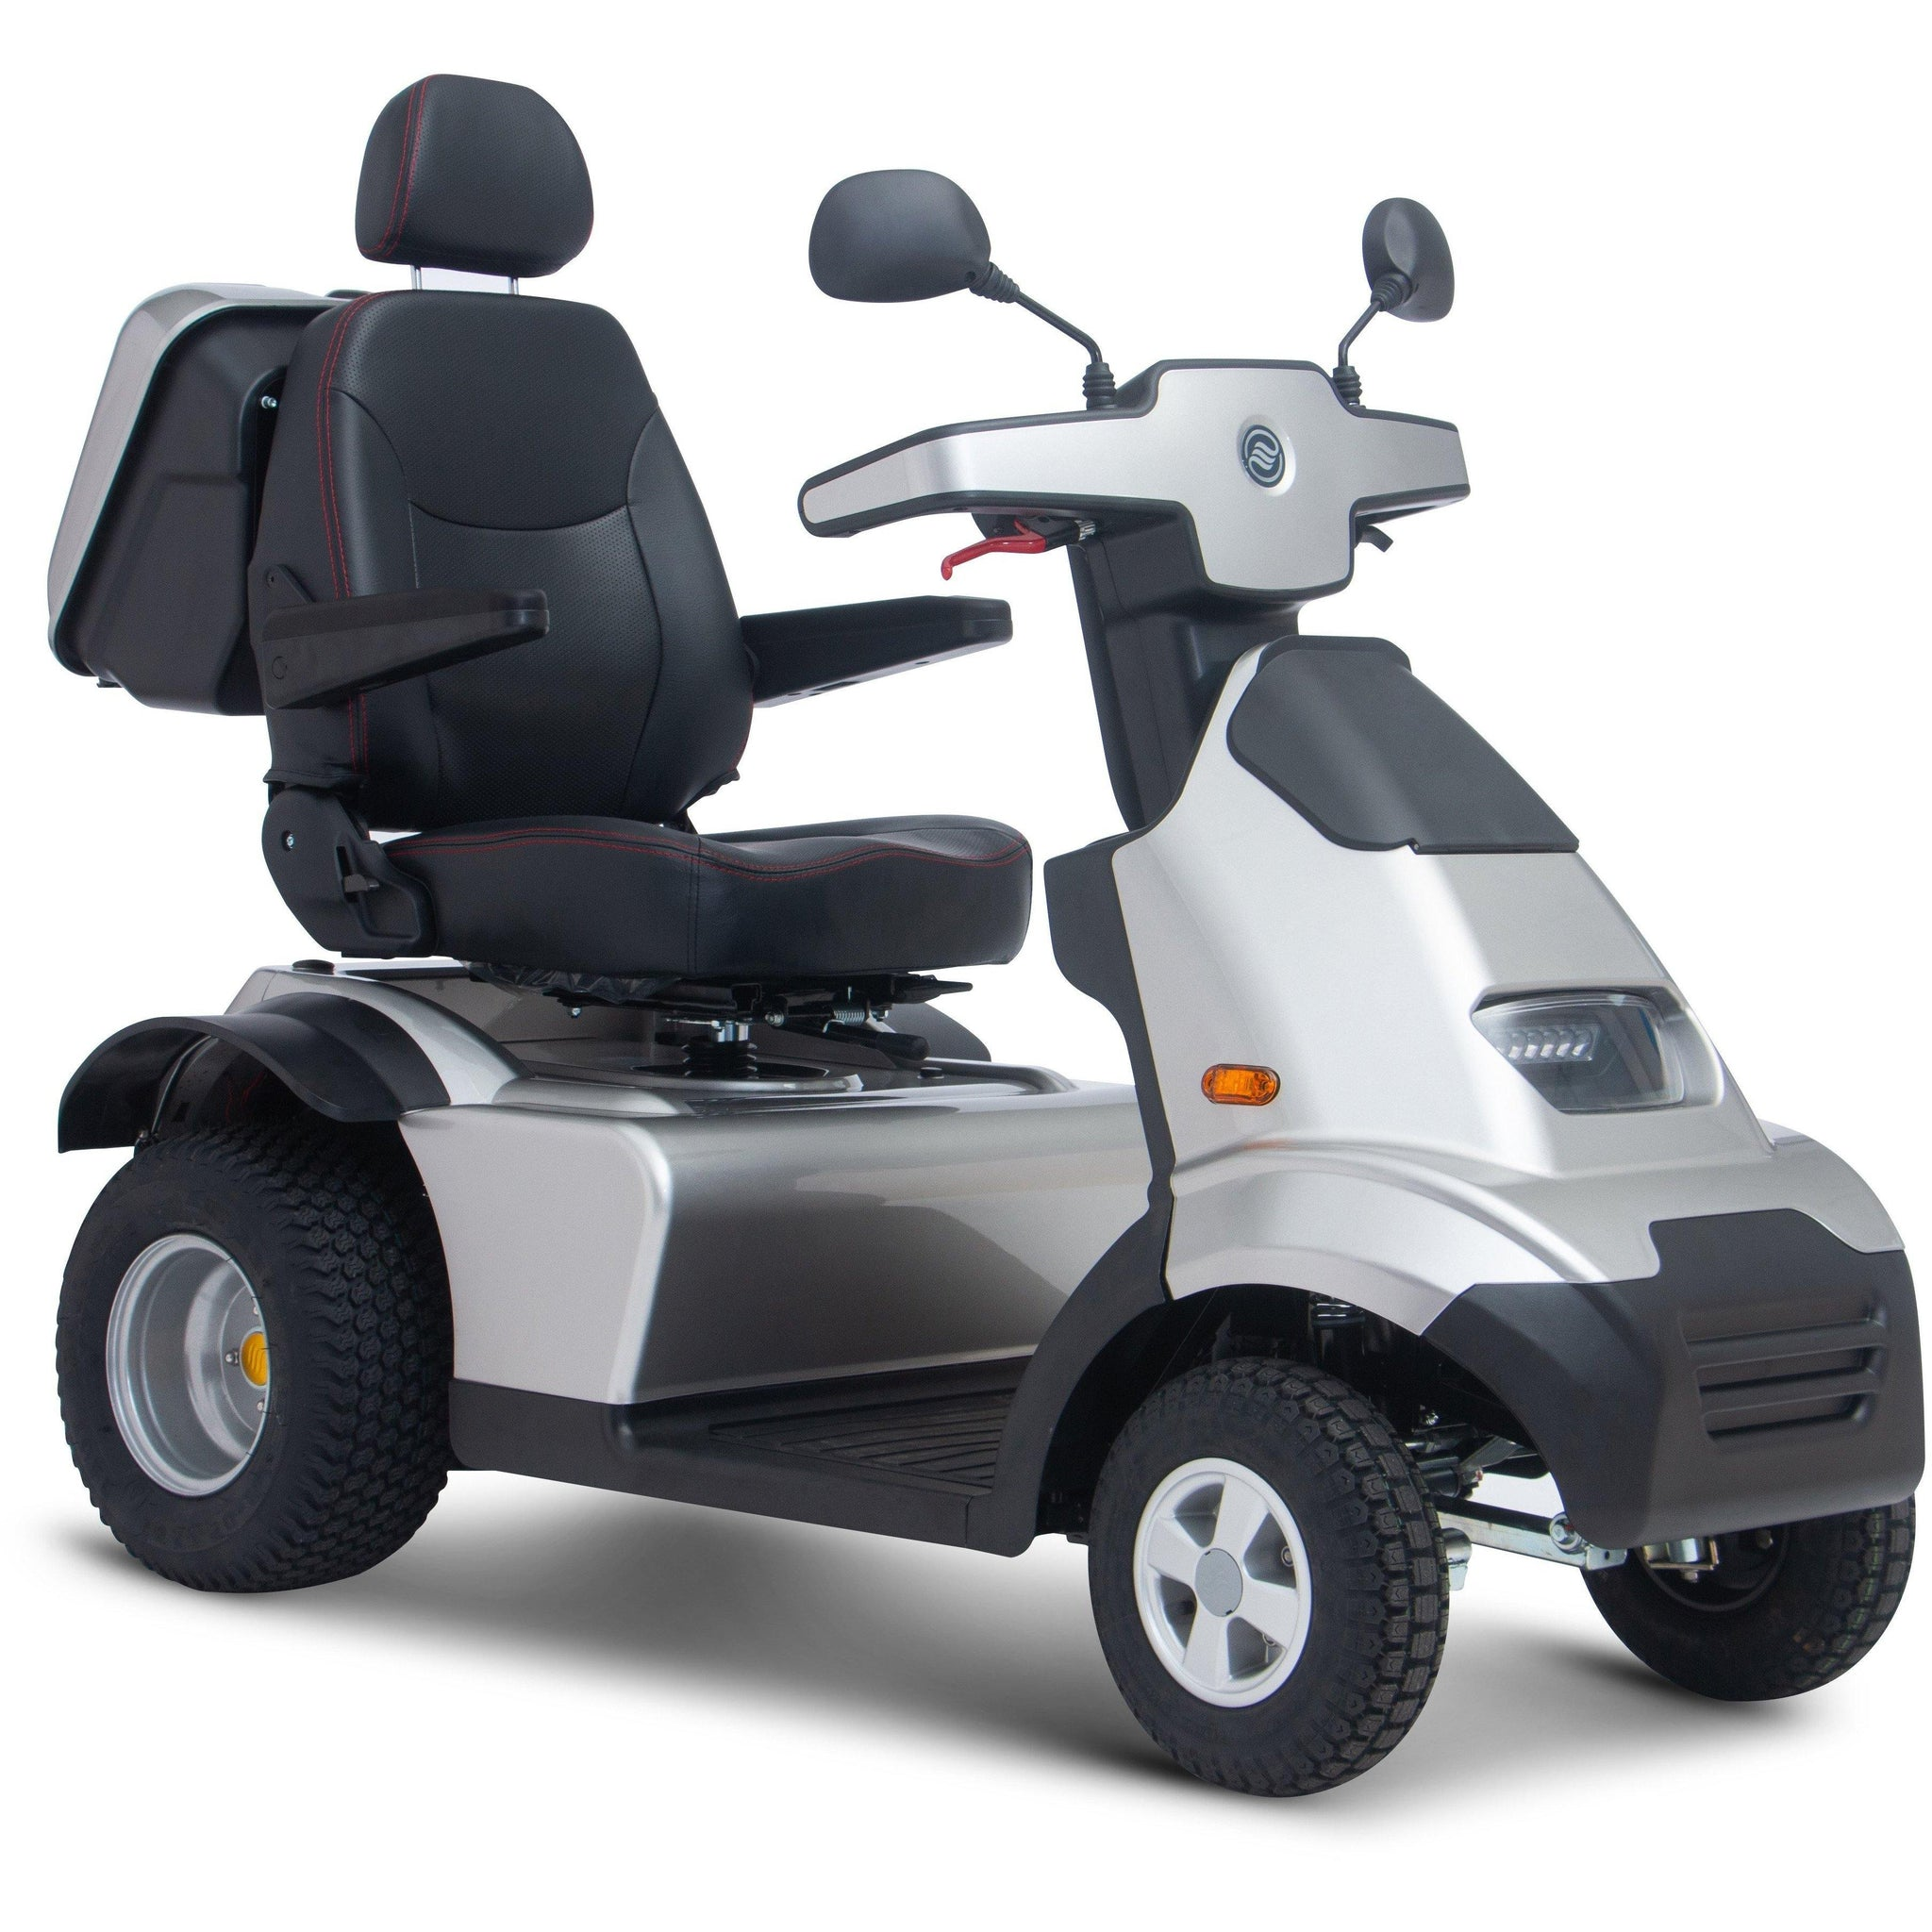 AfiScooter S4 Recreational Mobility Scooter